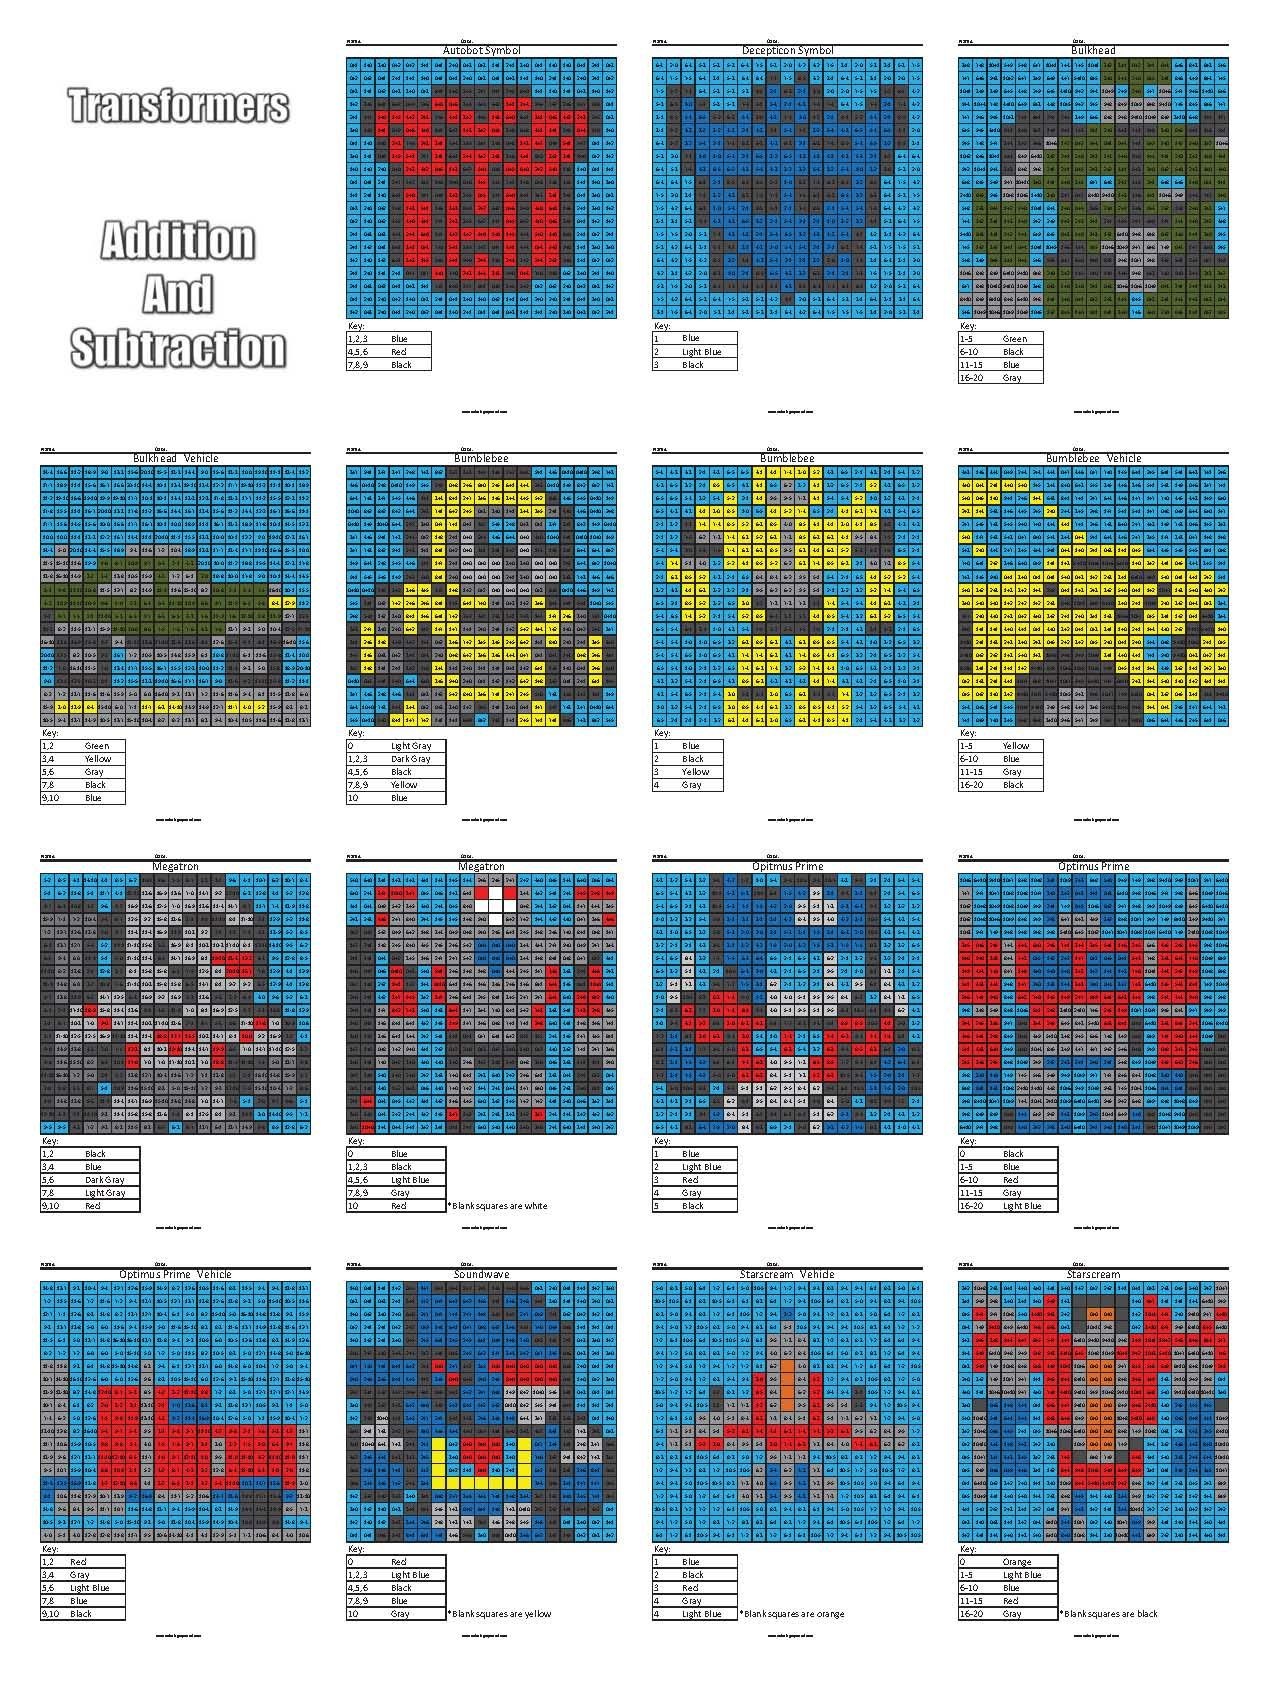 Transformers Addition And Subtraction